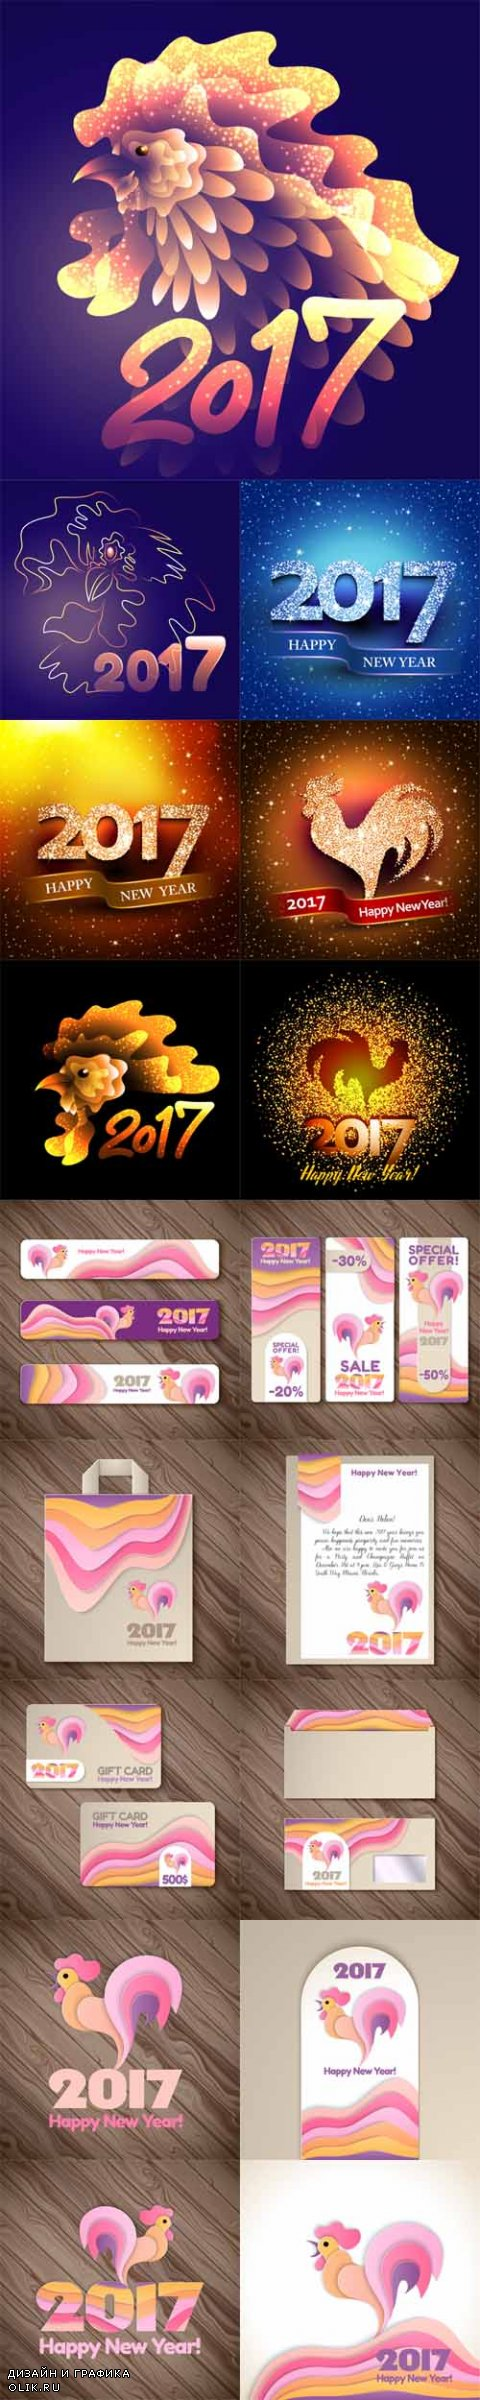 Vector Happy New Year with Rooster Symbol of 2017